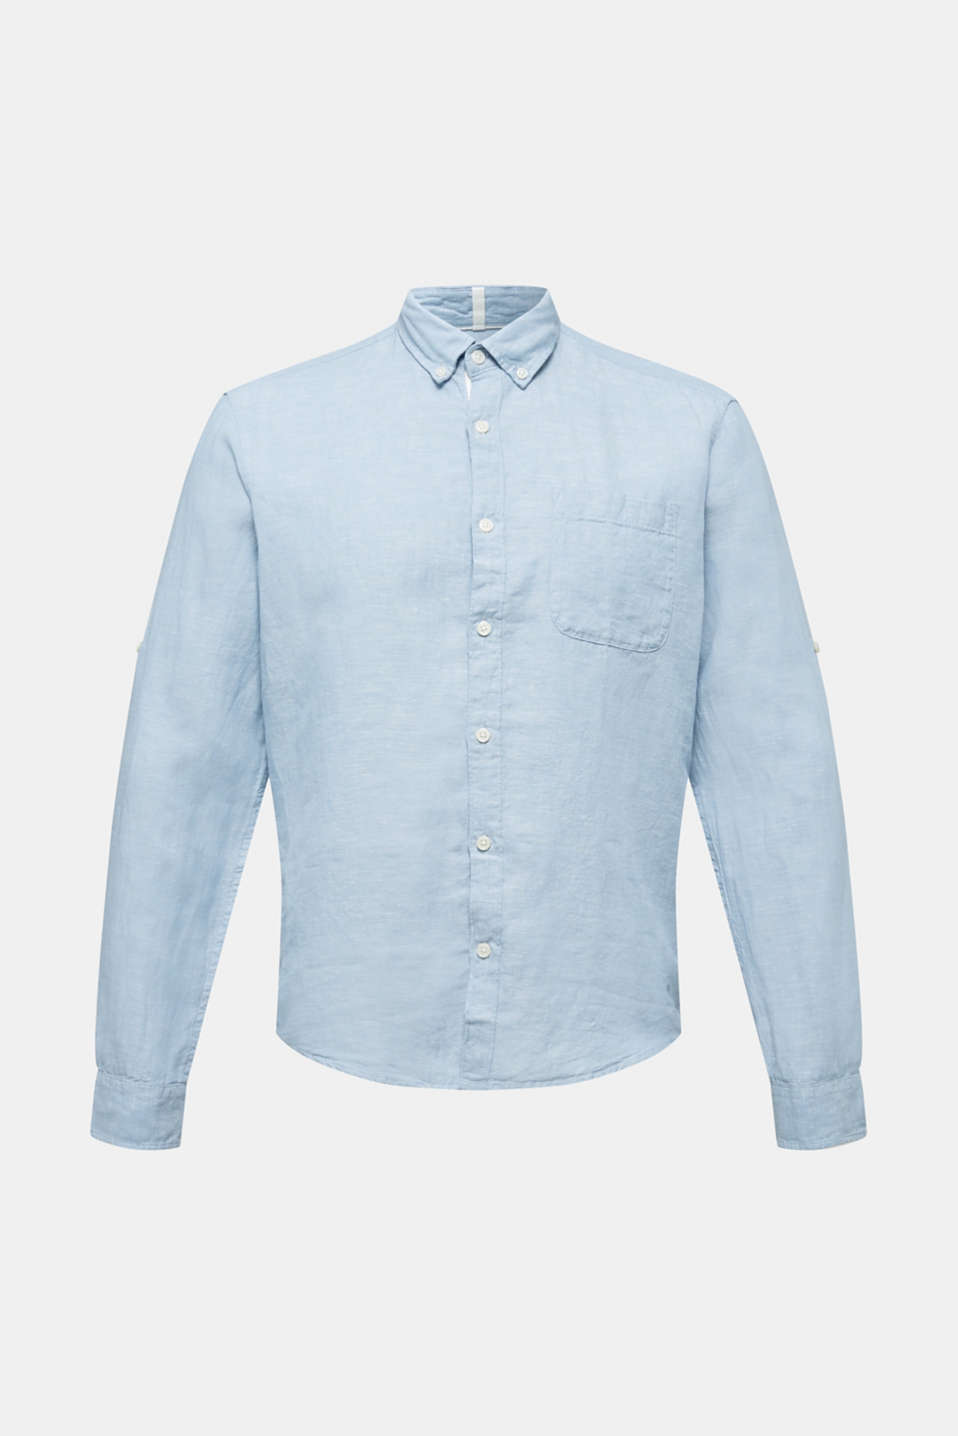 Shirts woven Regular fit, LIGHT BLUE, detail image number 5